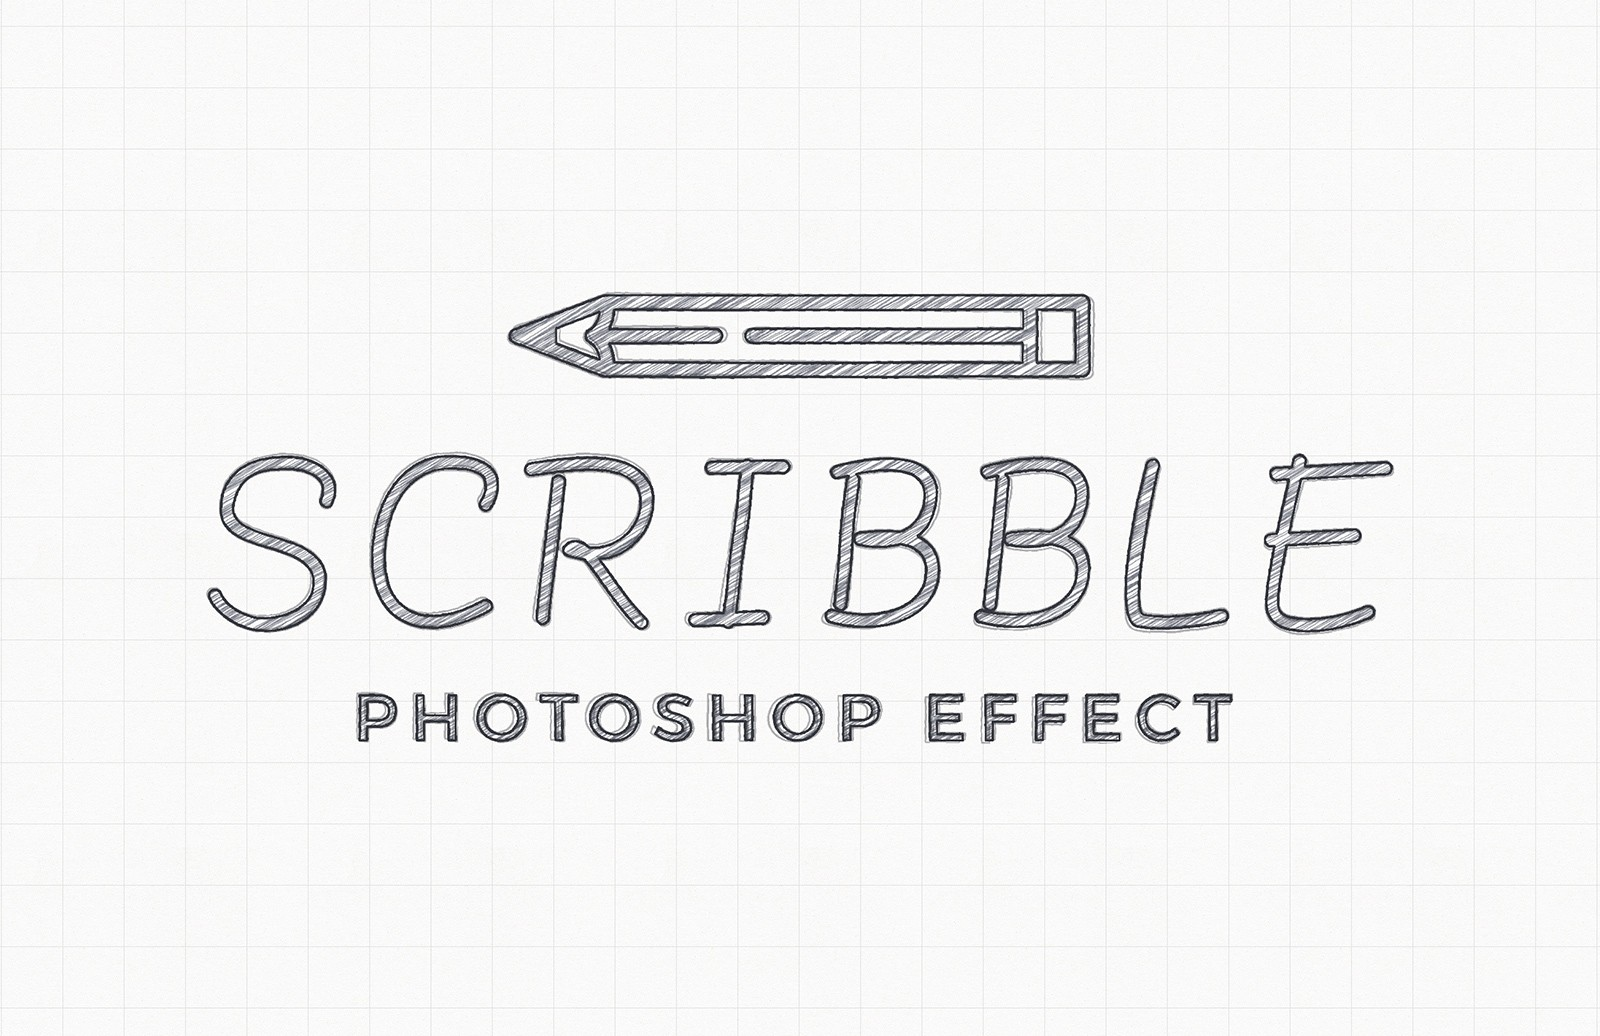 Scribble Photoshop Effect Mockup Preview 1